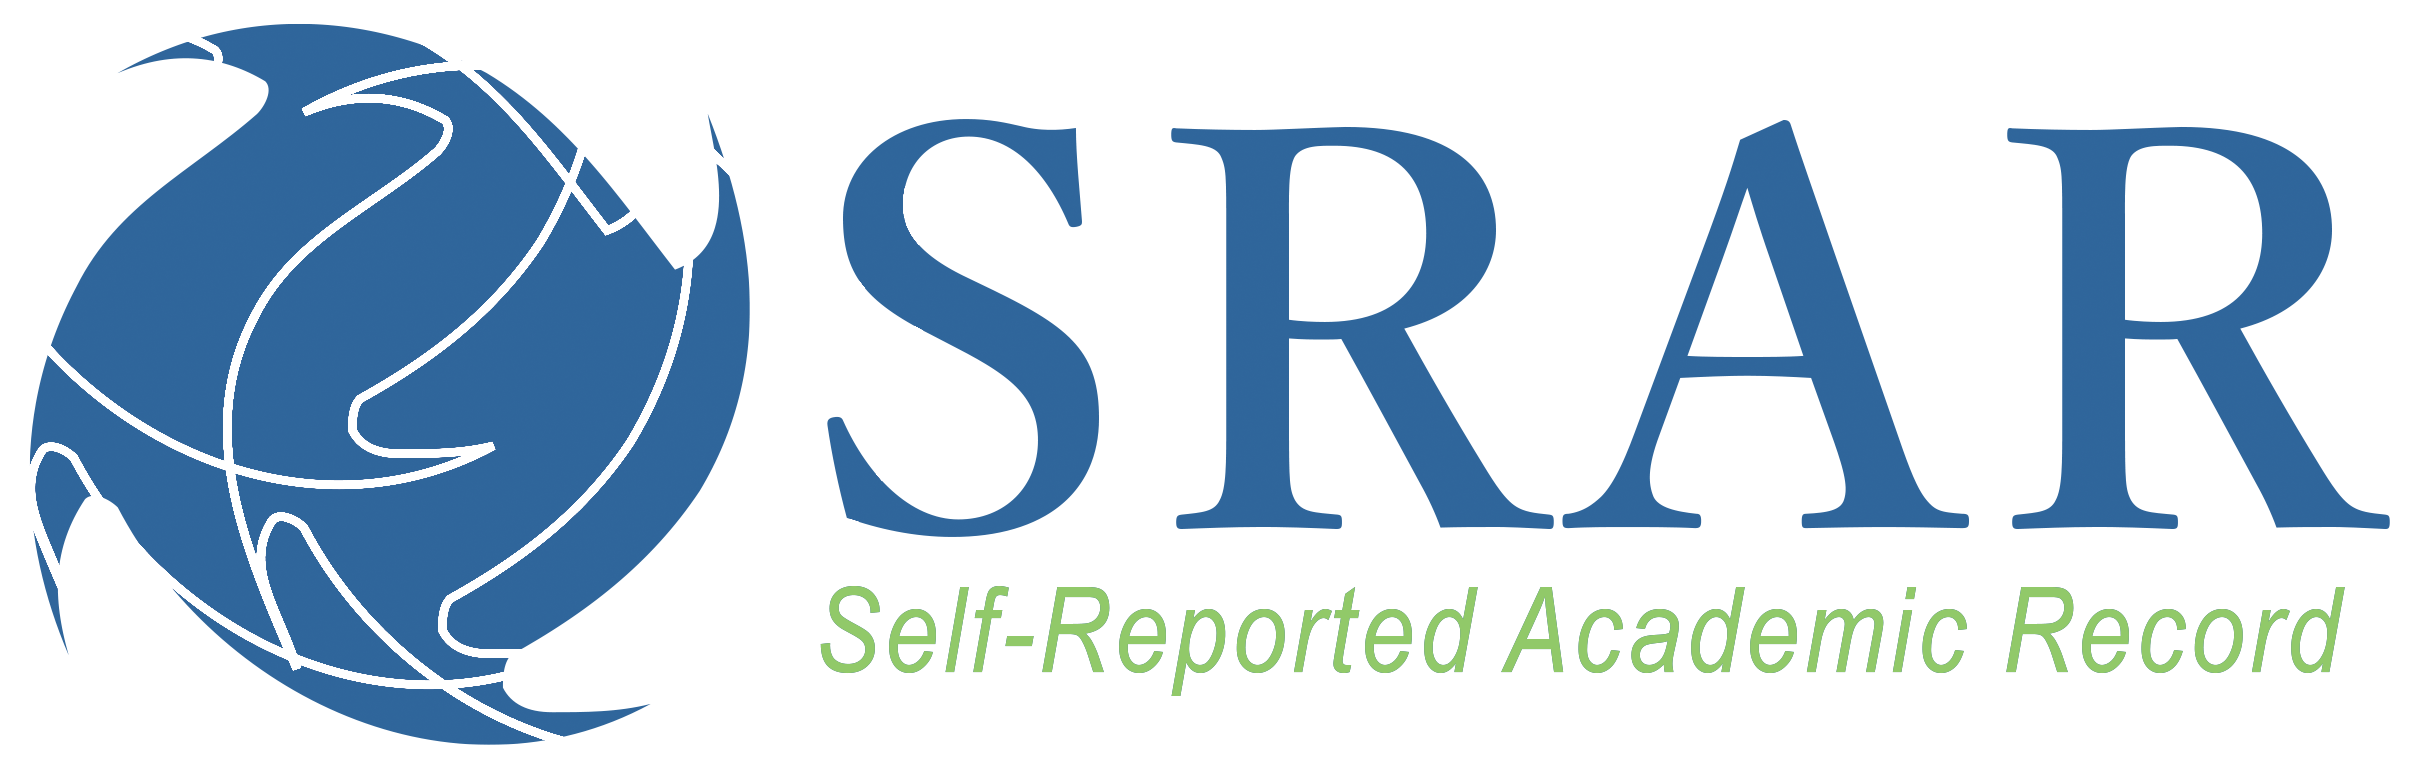 SRAR pitt penn state Rutgers self reported academic records transcripts